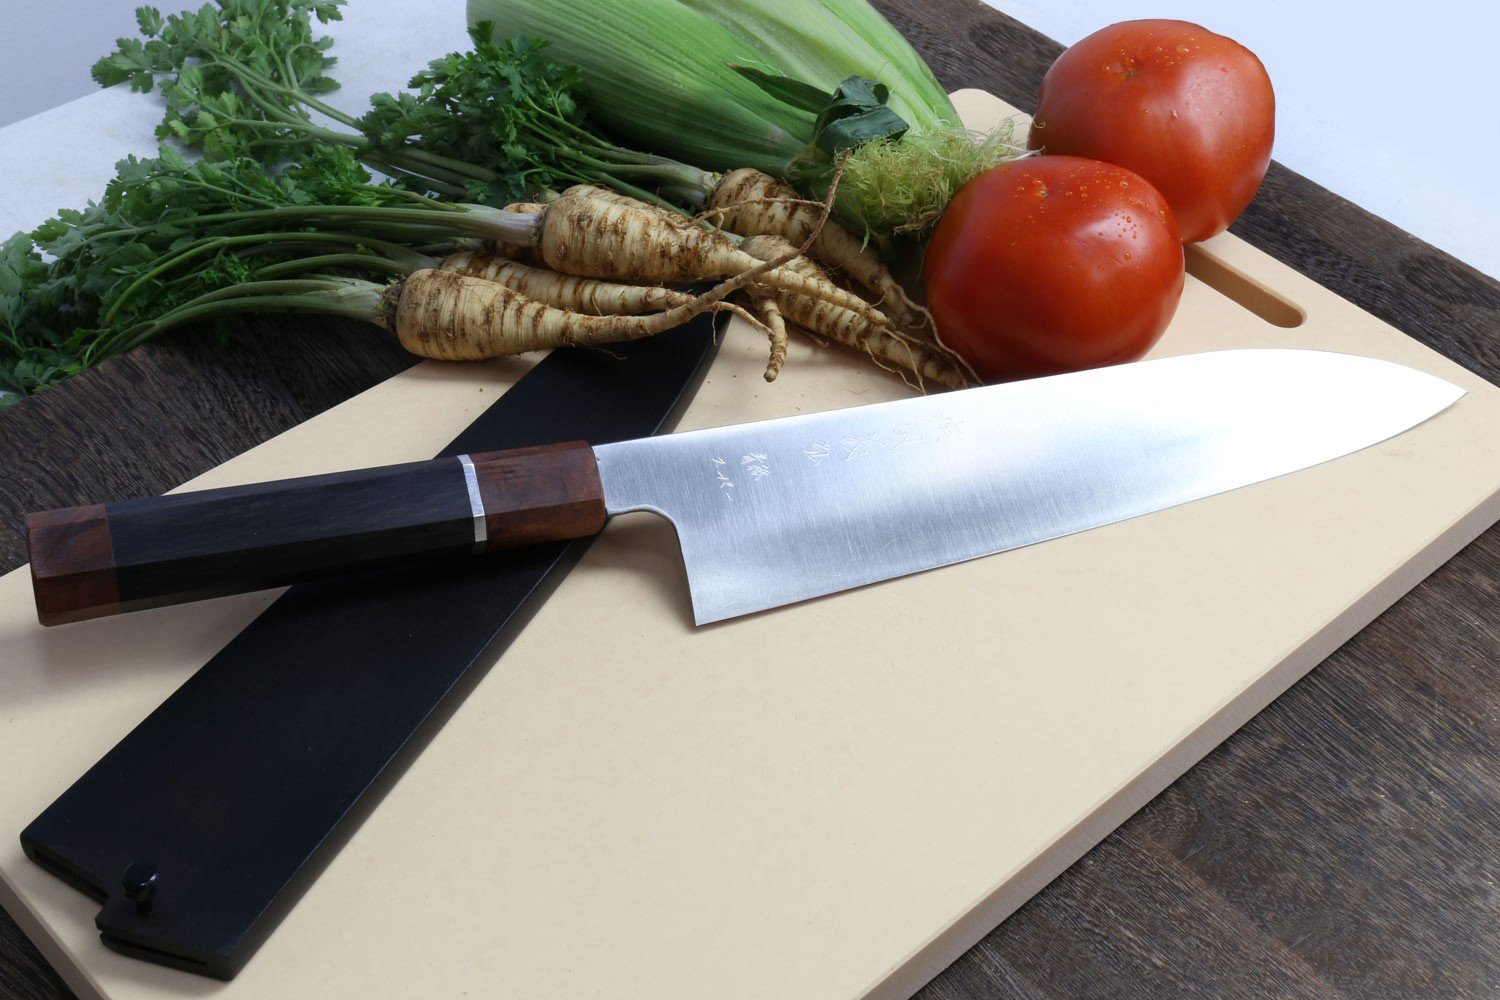 Yoshihiro Super Blue High Carbon Steel Stainless Clad Gyuto Japanese Chefs Knife Ebony handle with Sterling Silver ring, with Nuri Saya Cover 10.5'' (270mm)